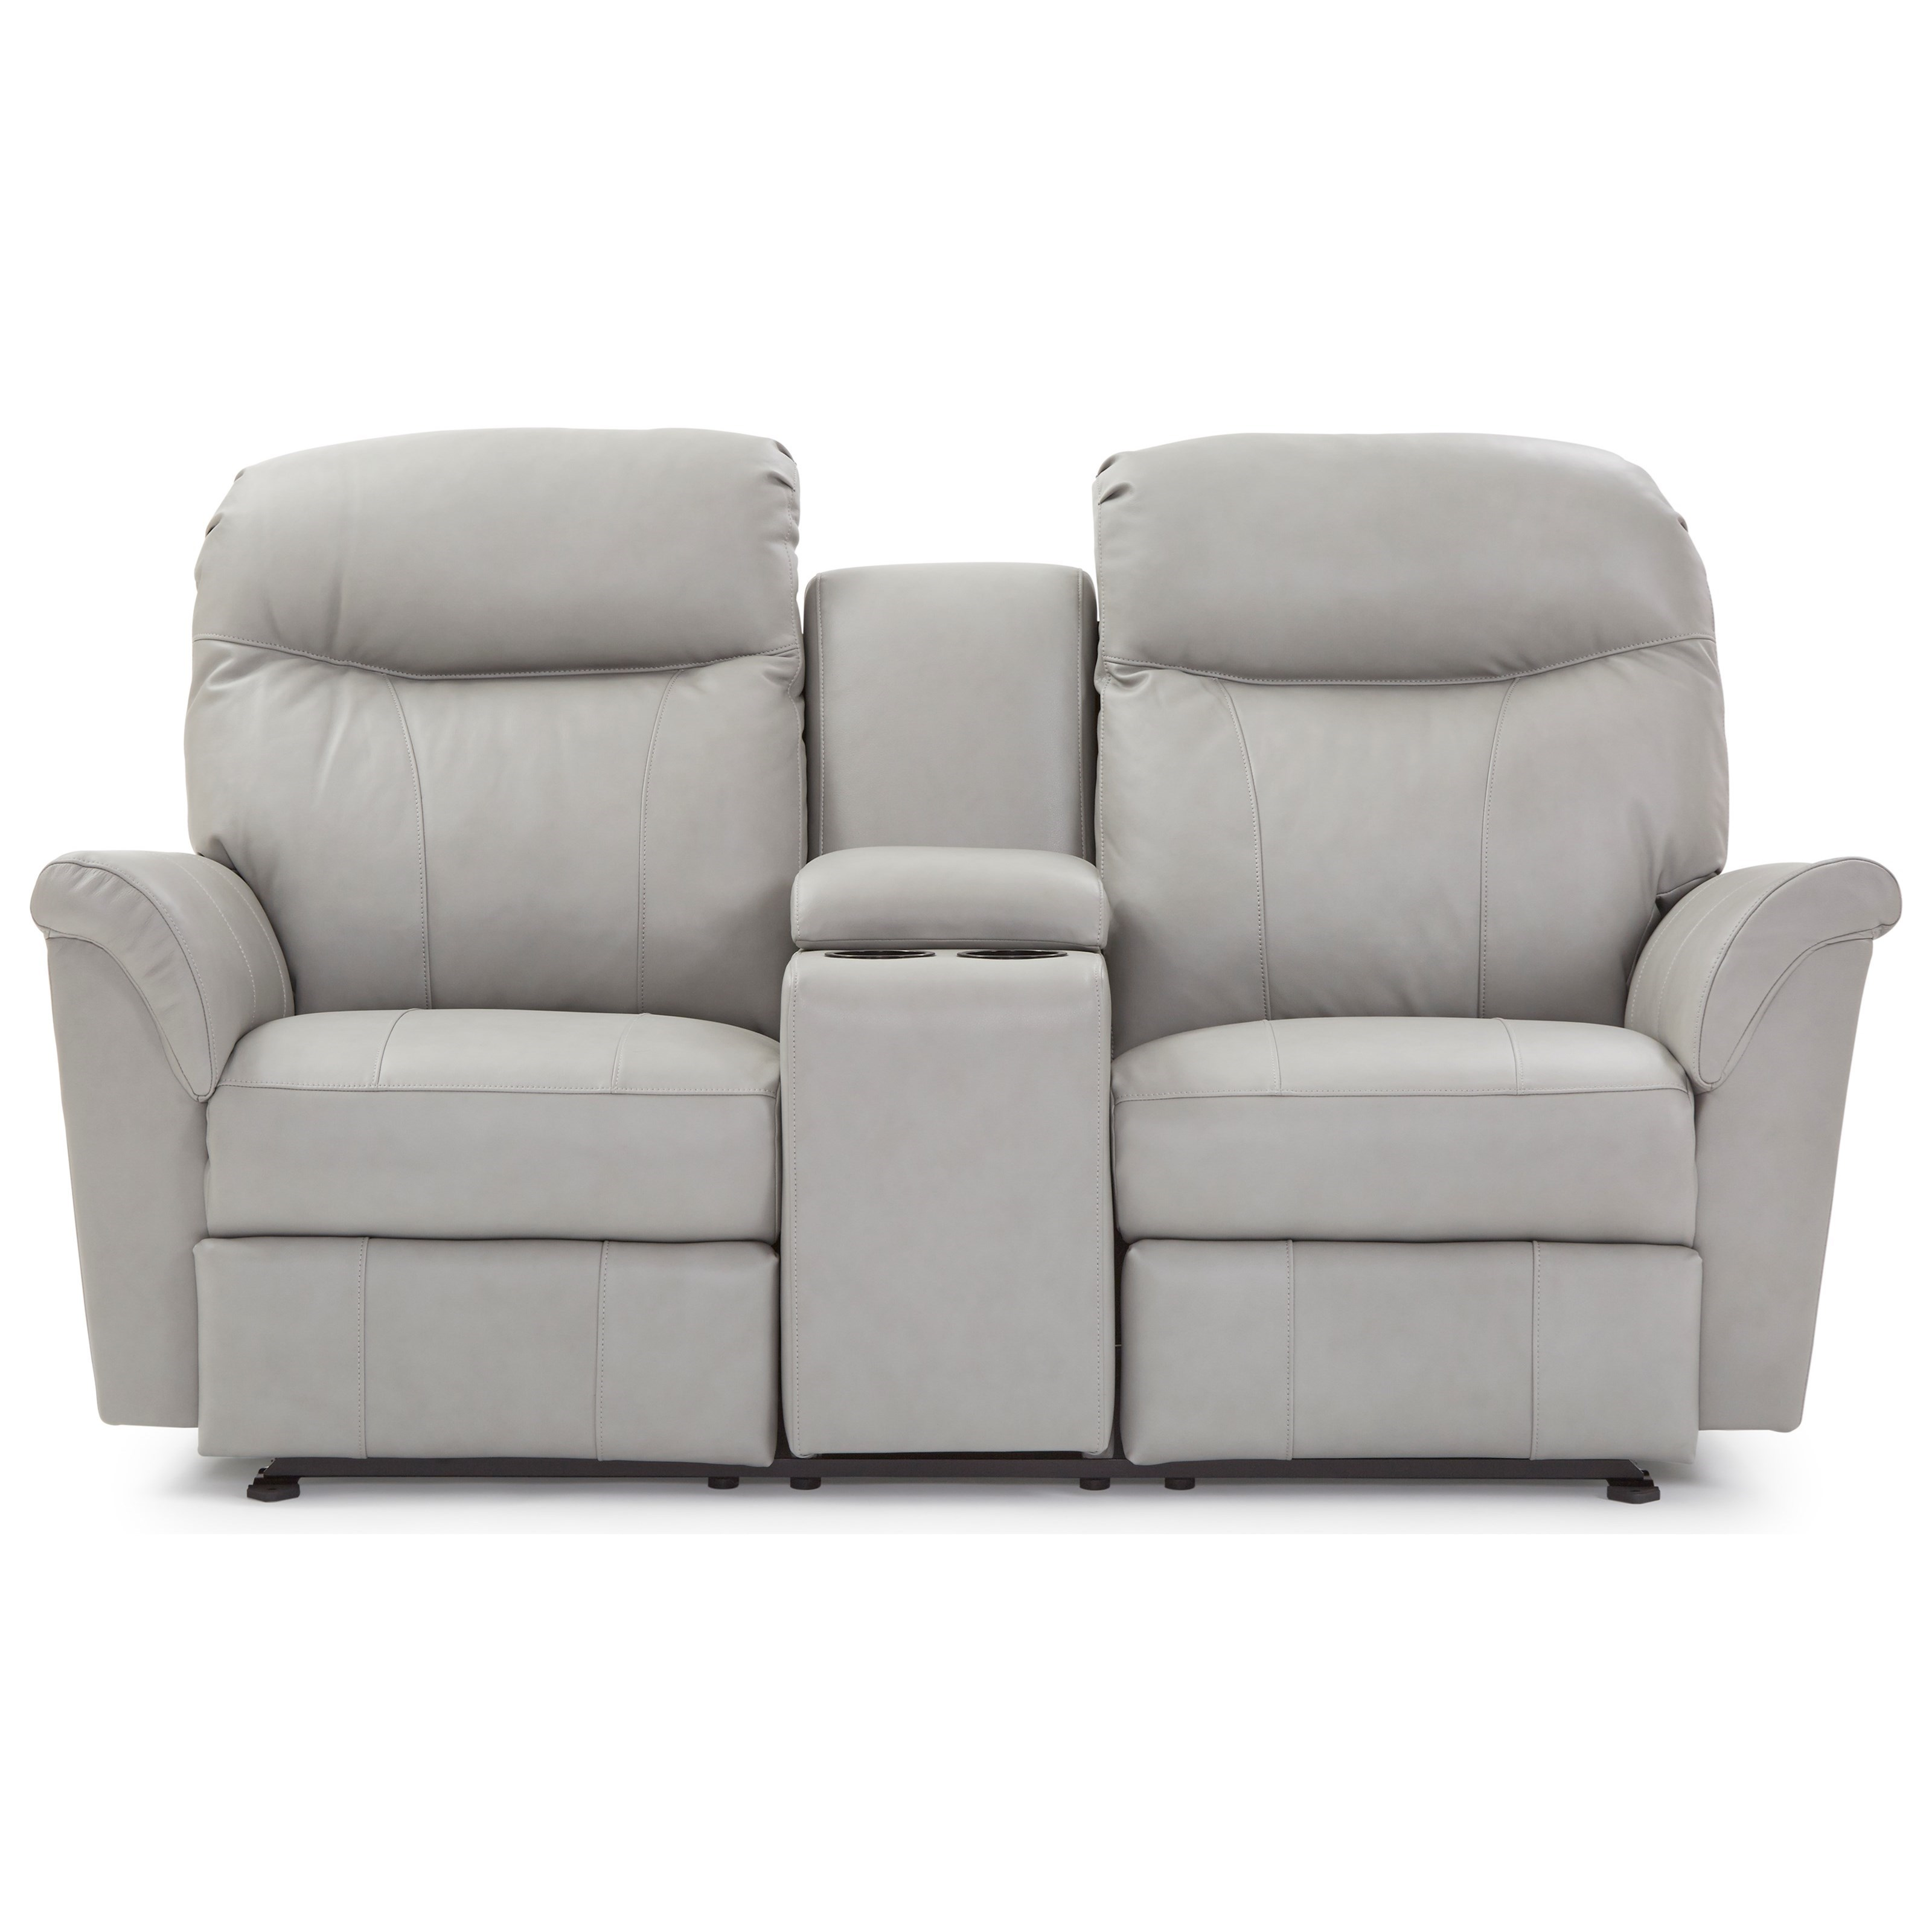 Caitlin Power Rocking Reclining Console Loveseat by Best Home Furnishings at Baer's Furniture